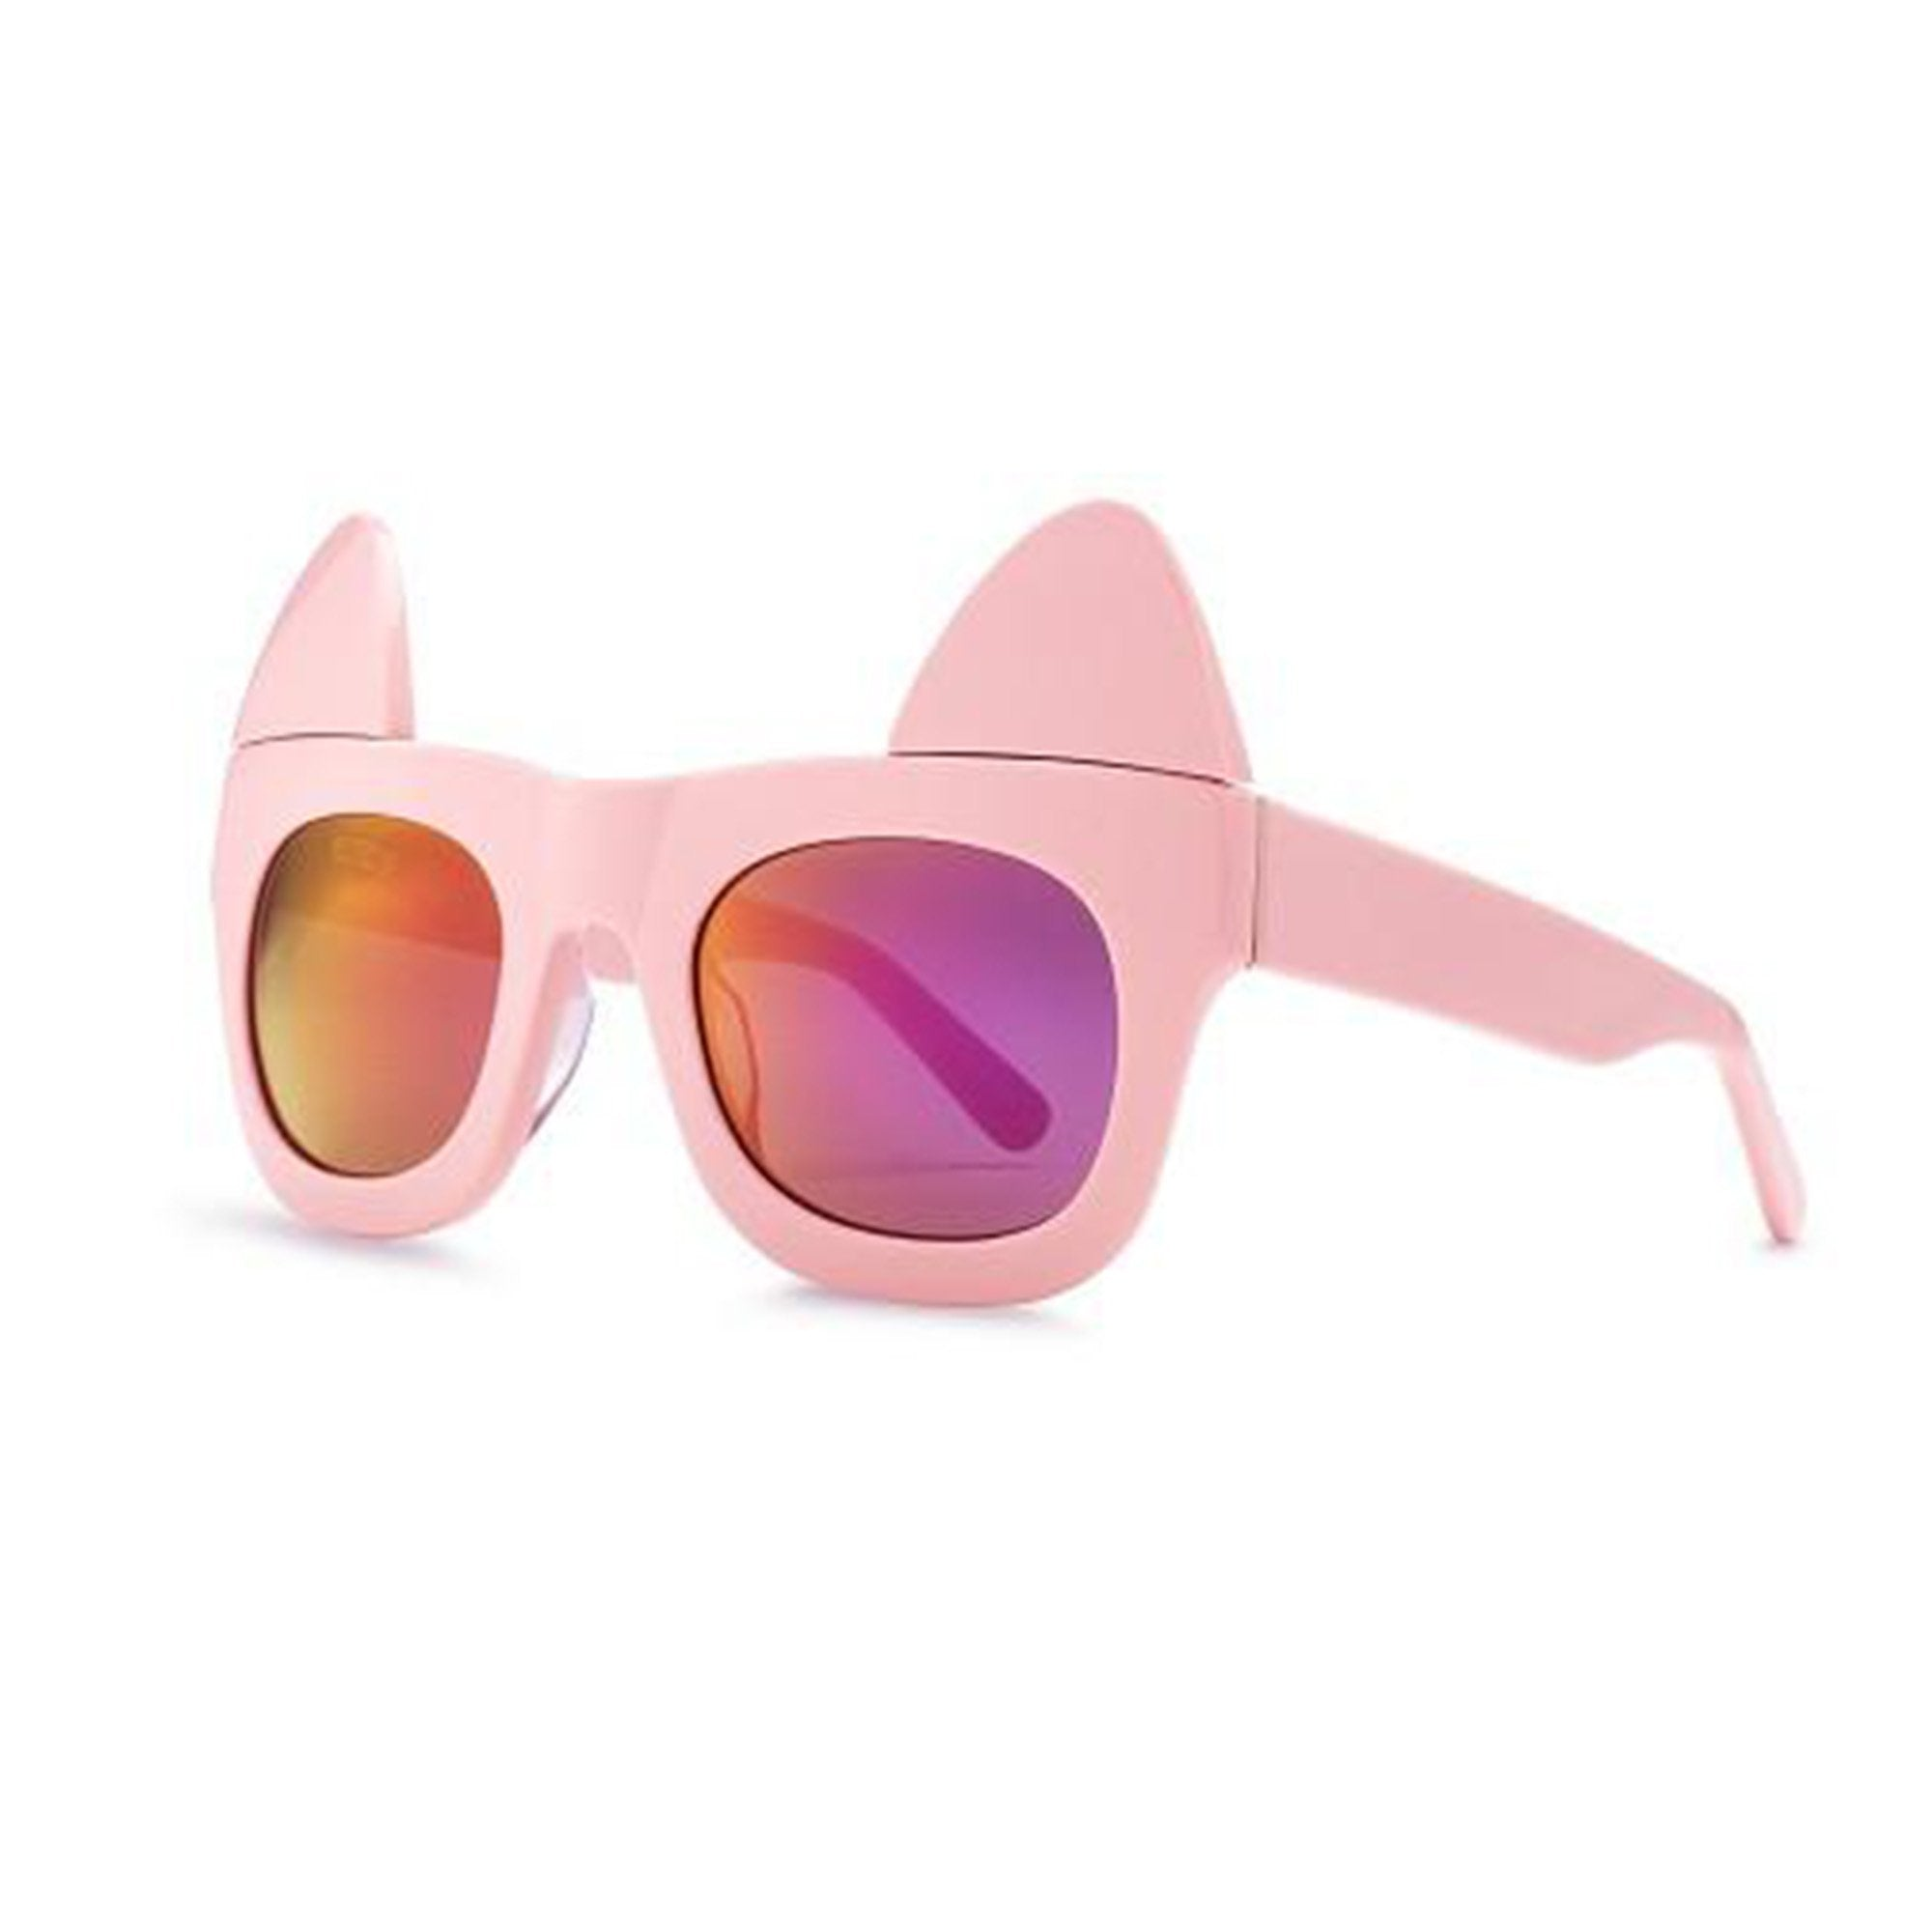 REVE by RENE Make me meow bon bon pink sunglasses